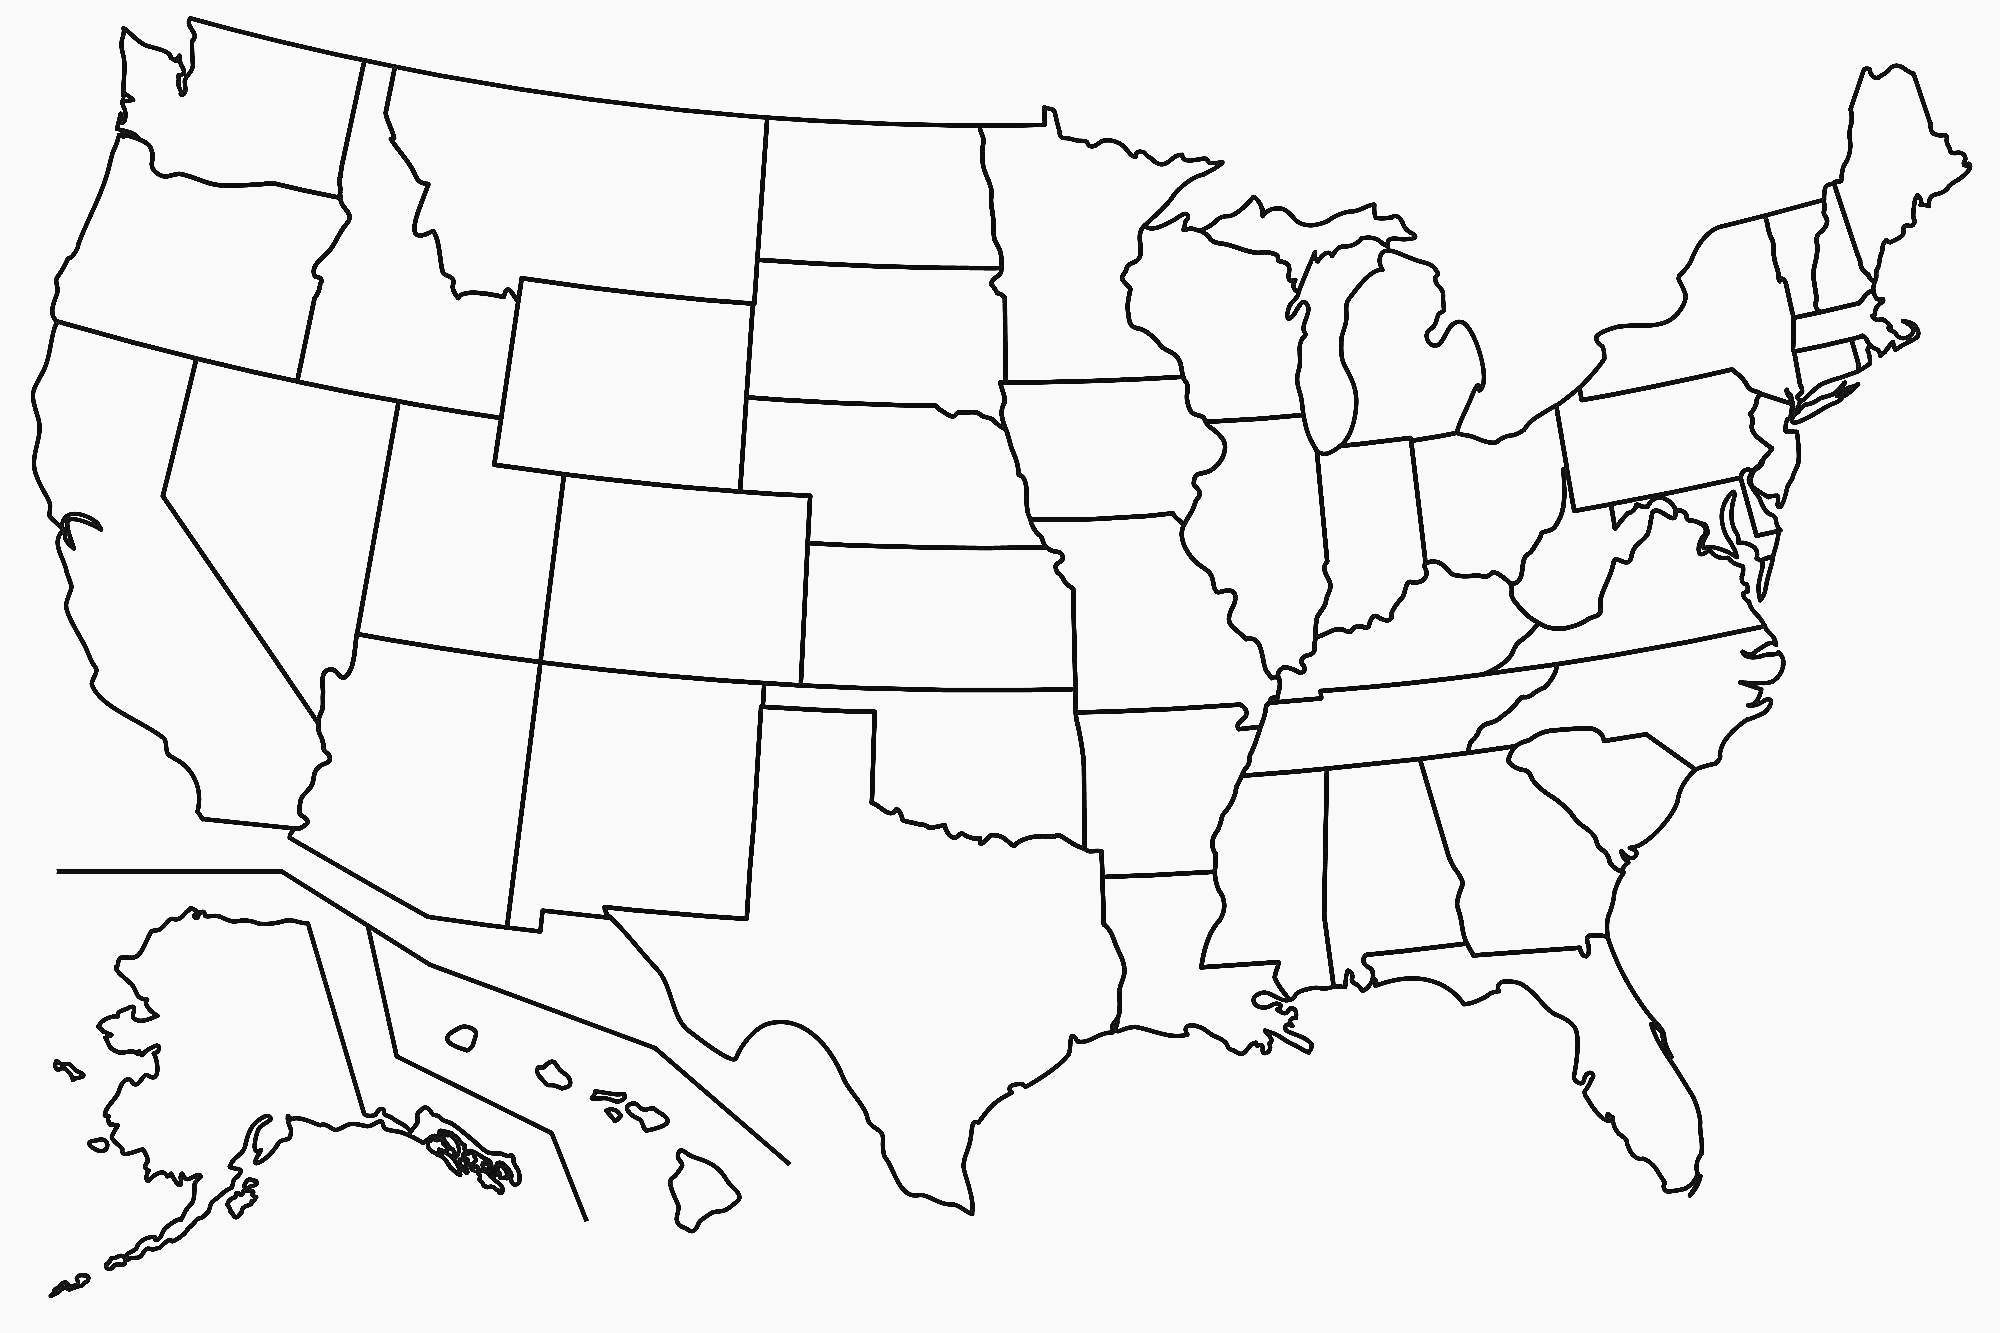 United States Map Blank Template Fresh Map Usa States Free Printable - Free Printable State Maps